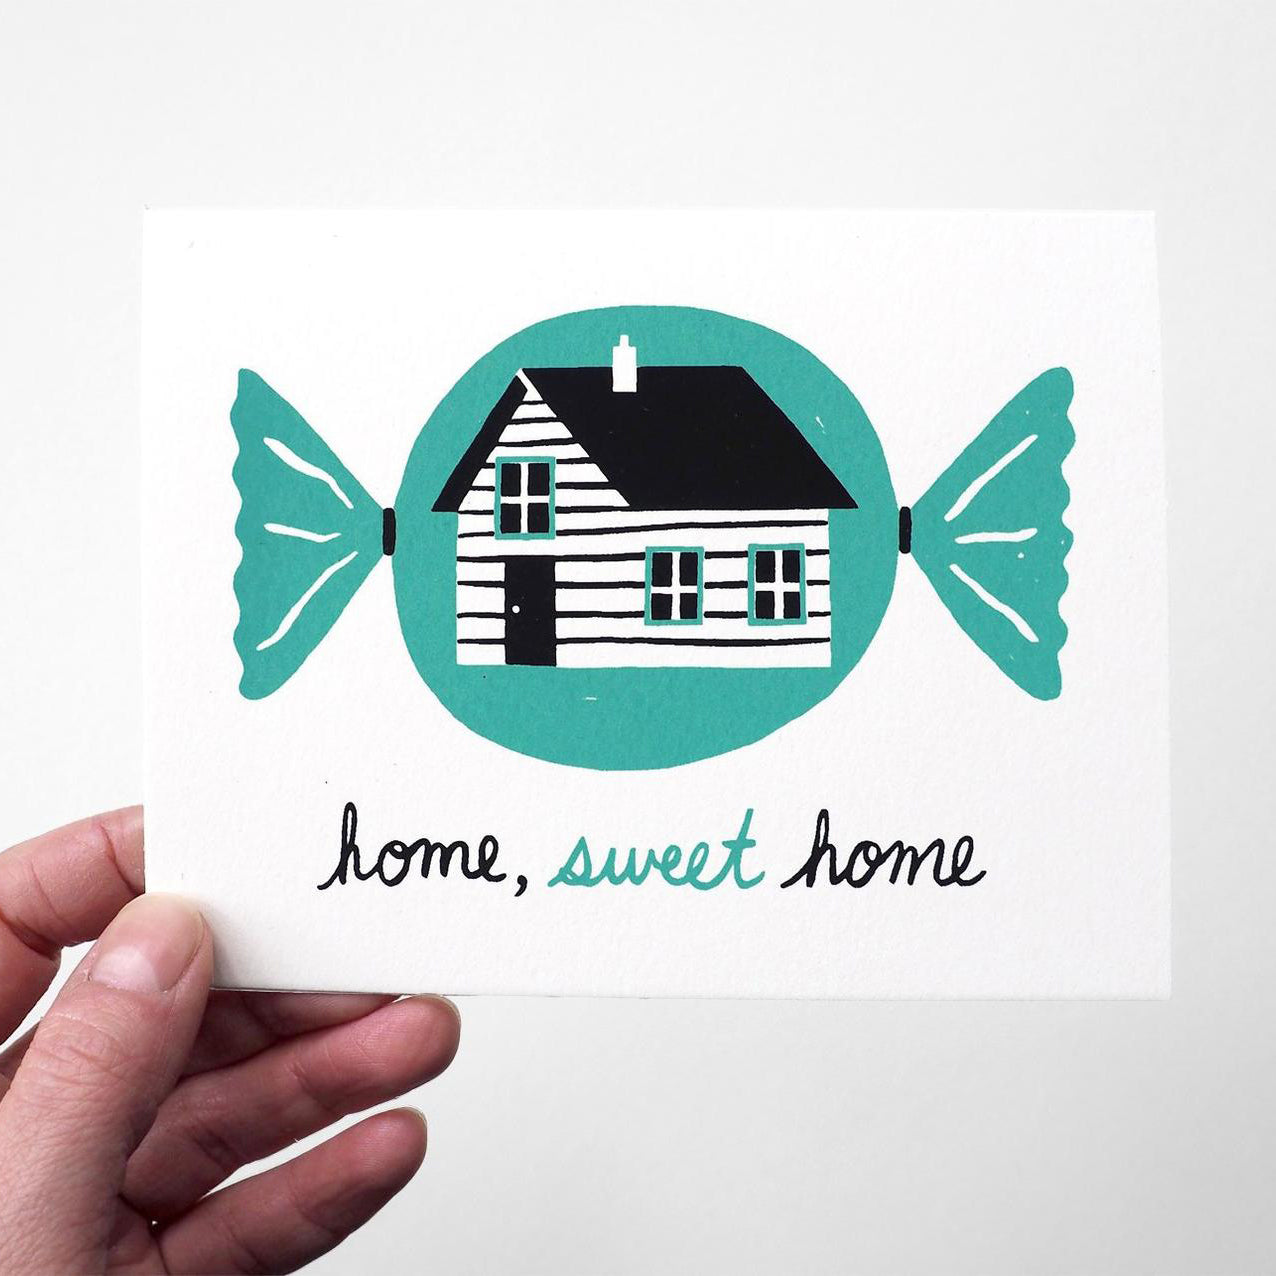 Home, Sweet Home Card